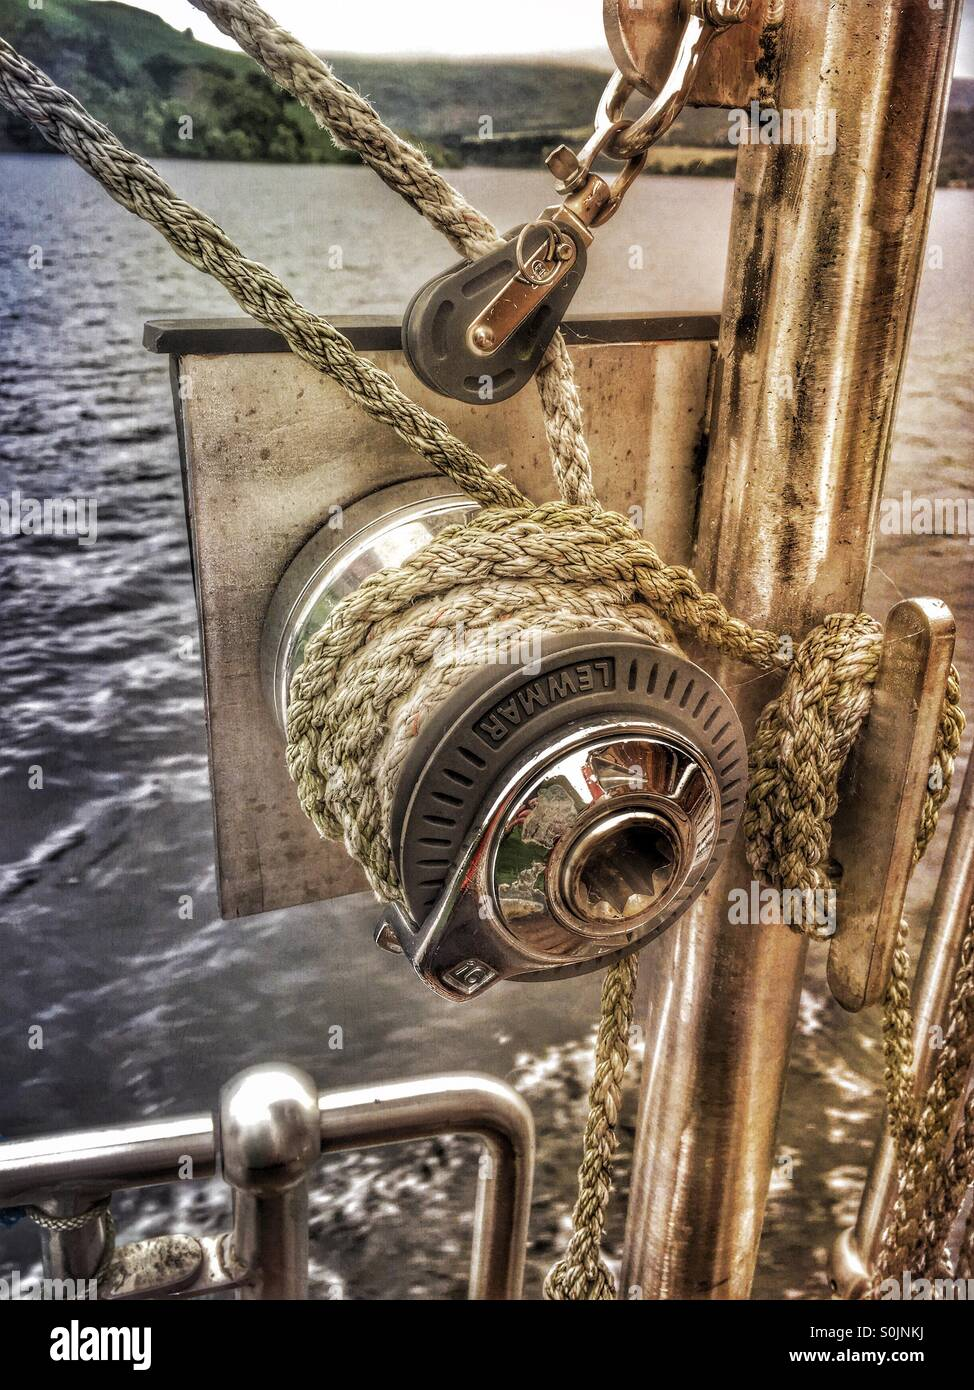 Winch and rope - Stock Image